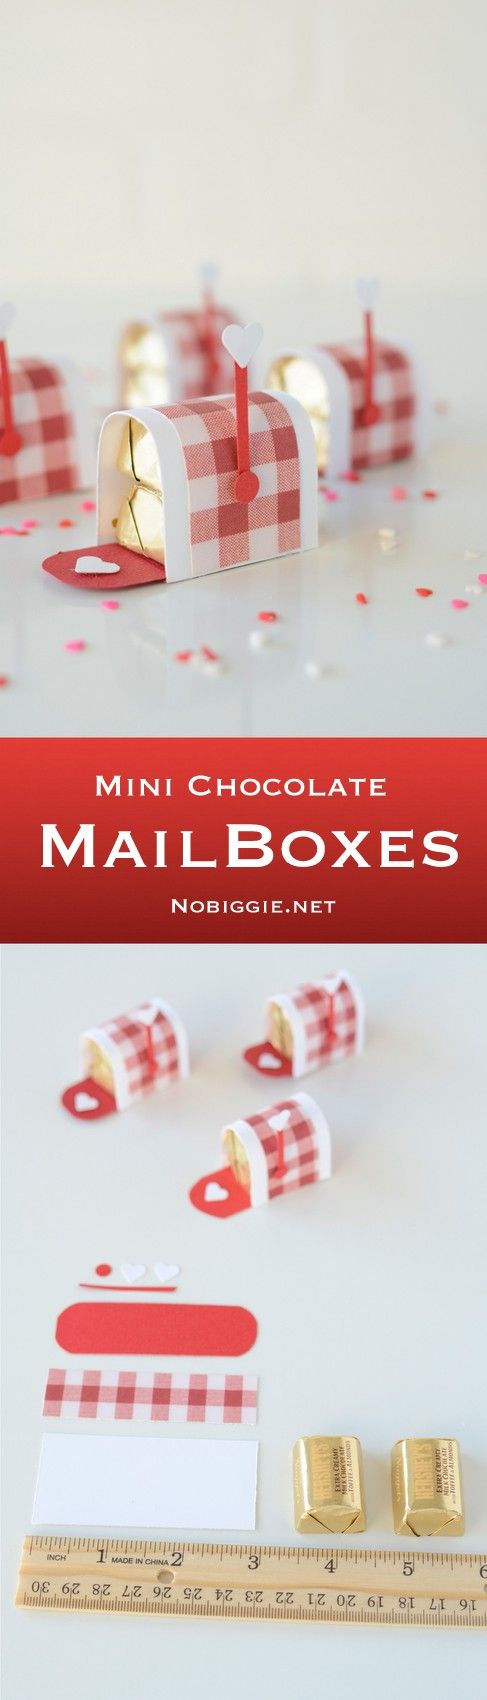 mini chocolate mailboxes be mine valentine pinterest valentinstag geschenke und. Black Bedroom Furniture Sets. Home Design Ideas